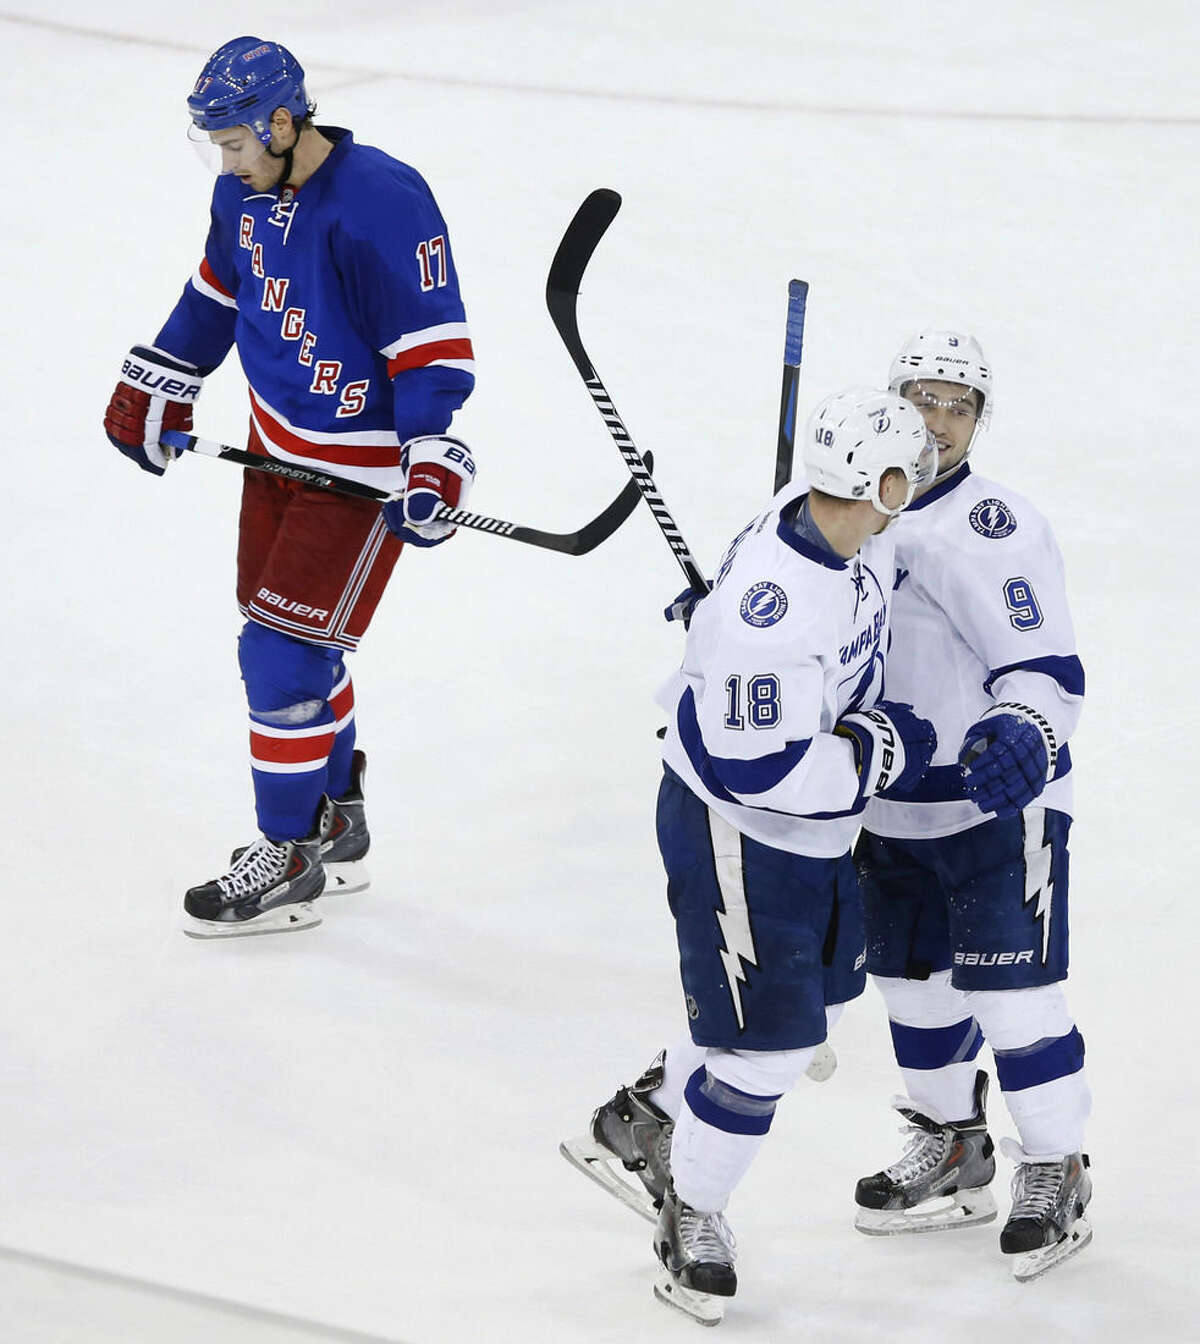 New York Rangers' John Moore (17) skates by as Tampa Bay Lightning's Ondrej Palat (18), of Czech Republic, celebrates with teammate Tyler Johnson (9) after scoring an empty net goal during the third period of an NHL hockey game Monday, Dec. 1, 2014, in New York. Tampa Bay won 6-3. (AP Photo/Jason DeCrow)